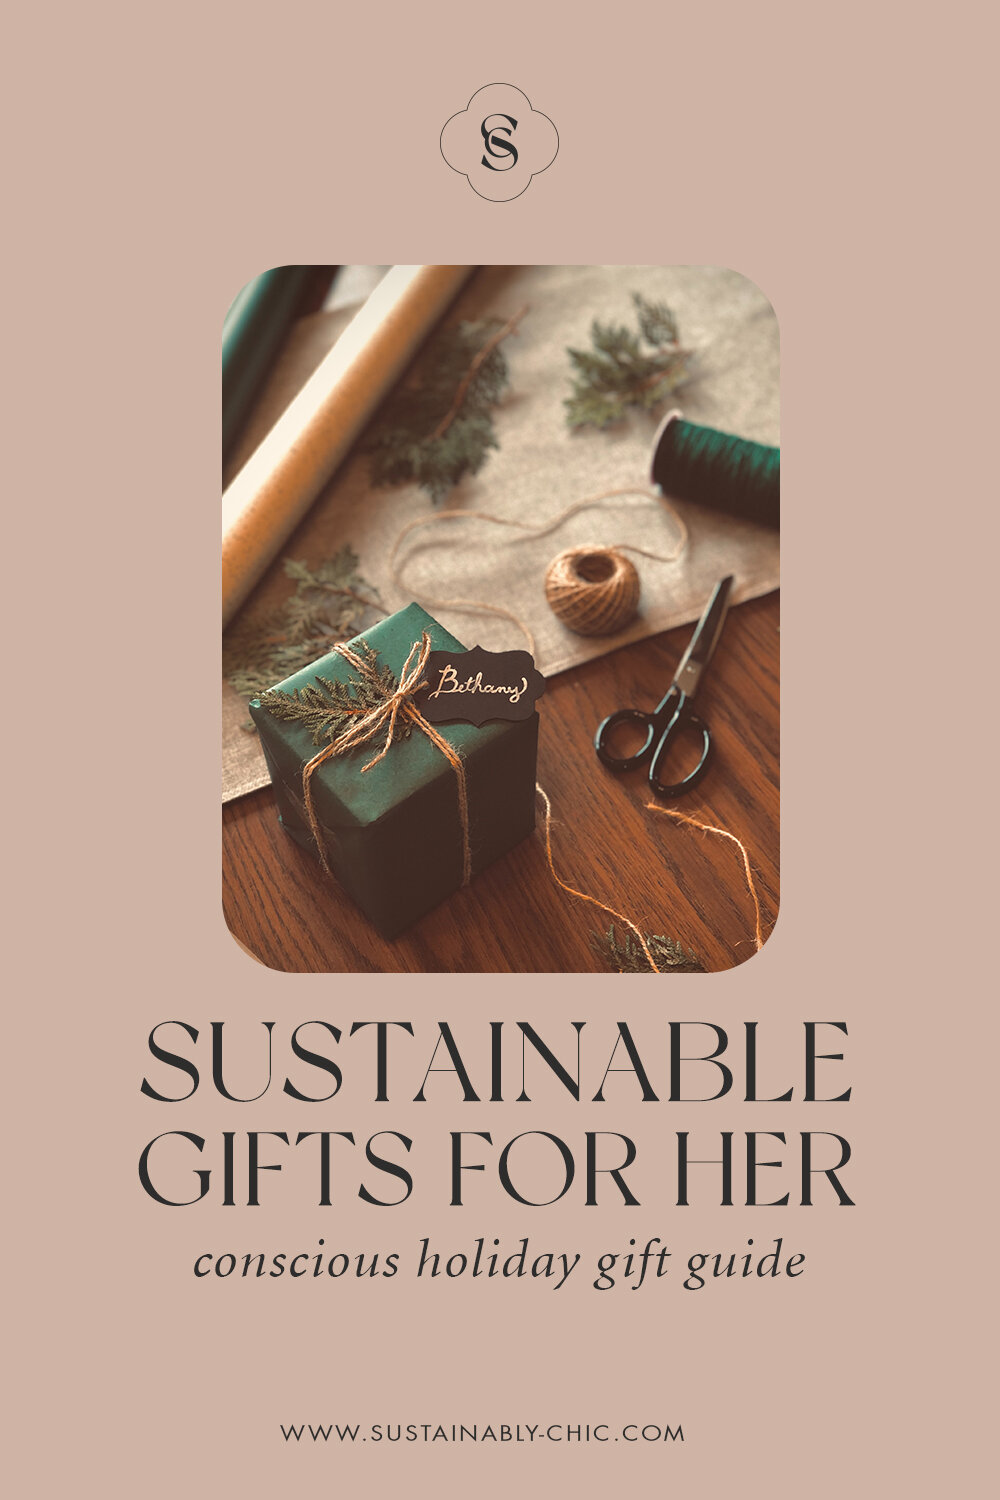 Sustainably Chic   Sustainable Fashion, Beauty & Lifestyle Blog   The Best Sustainable Gifts for Her.jpg